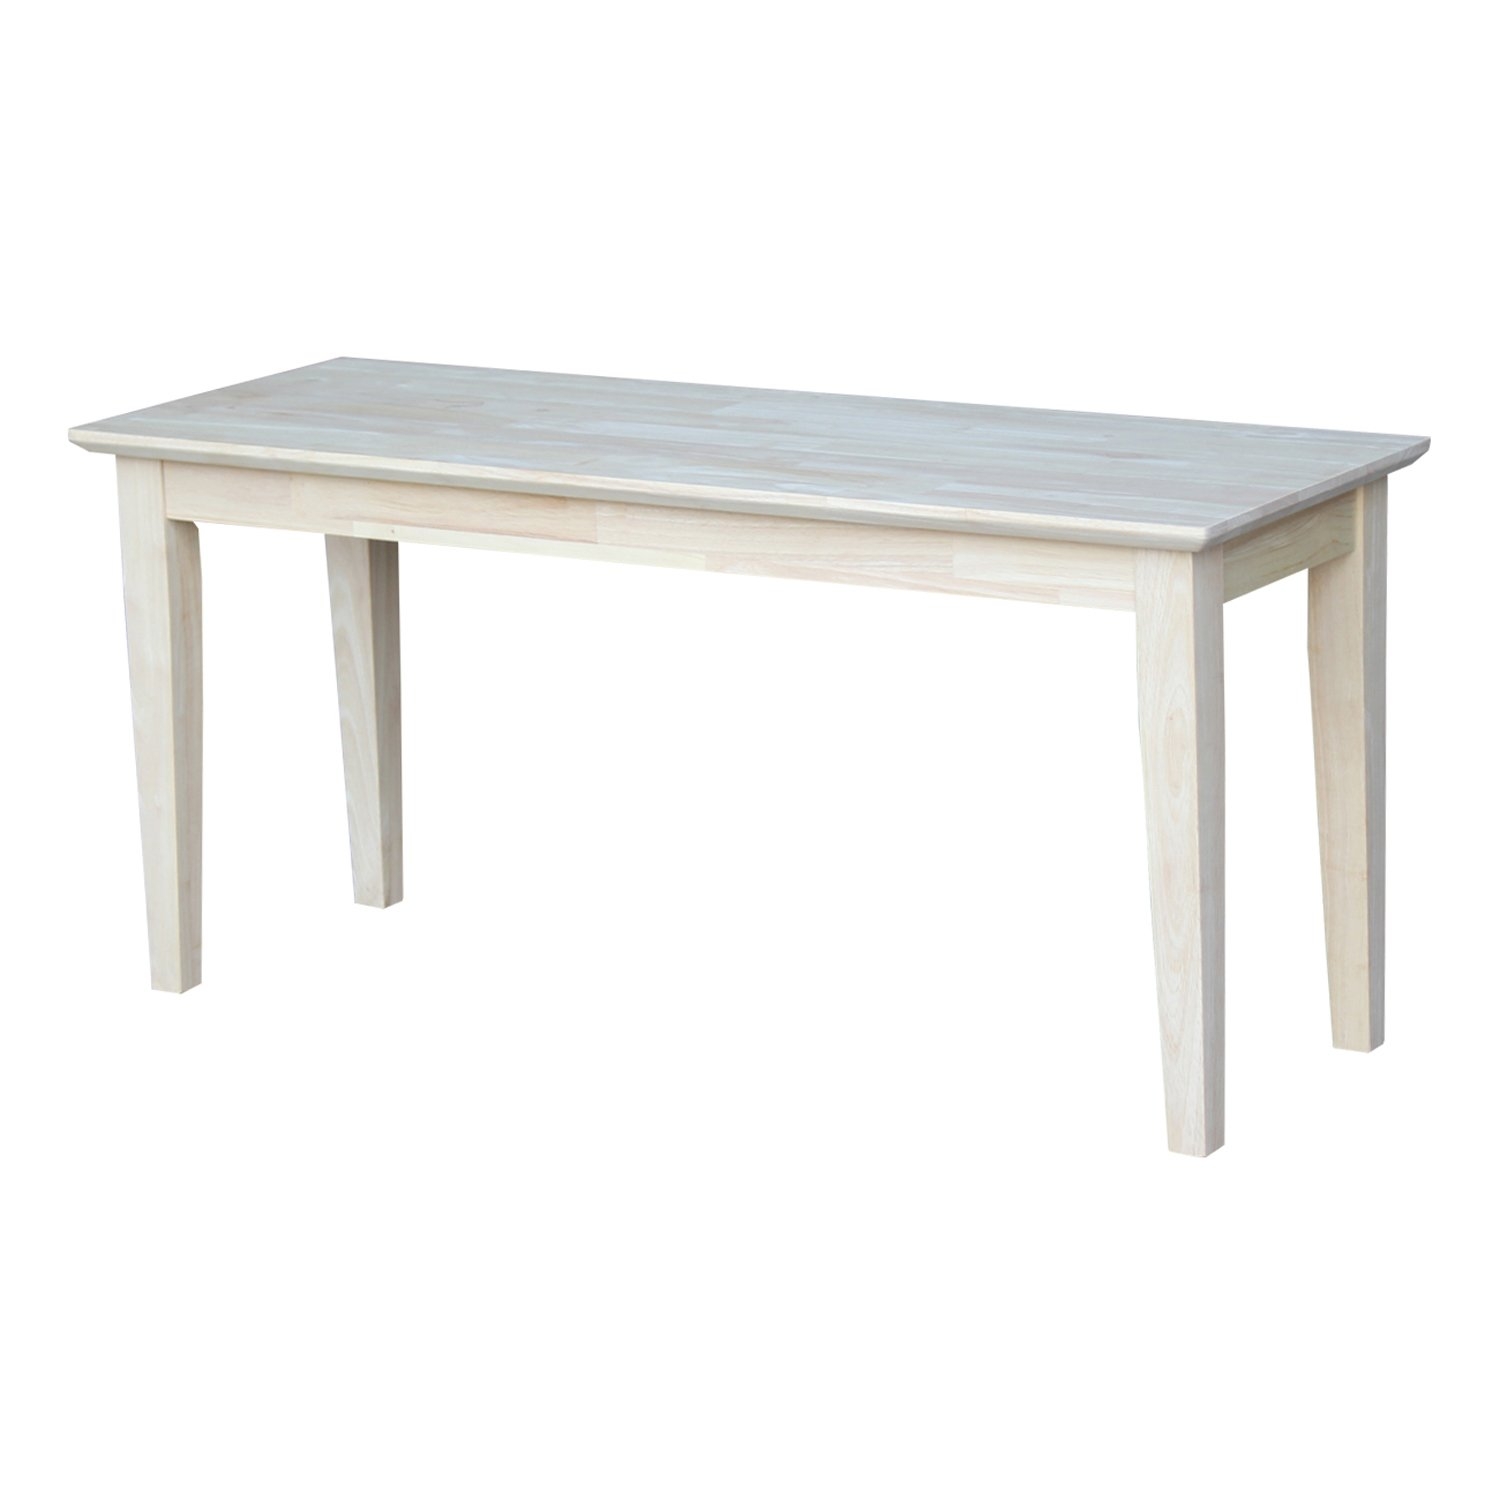 International Concepts BE-39 Shaker Style Bench, Unfinished